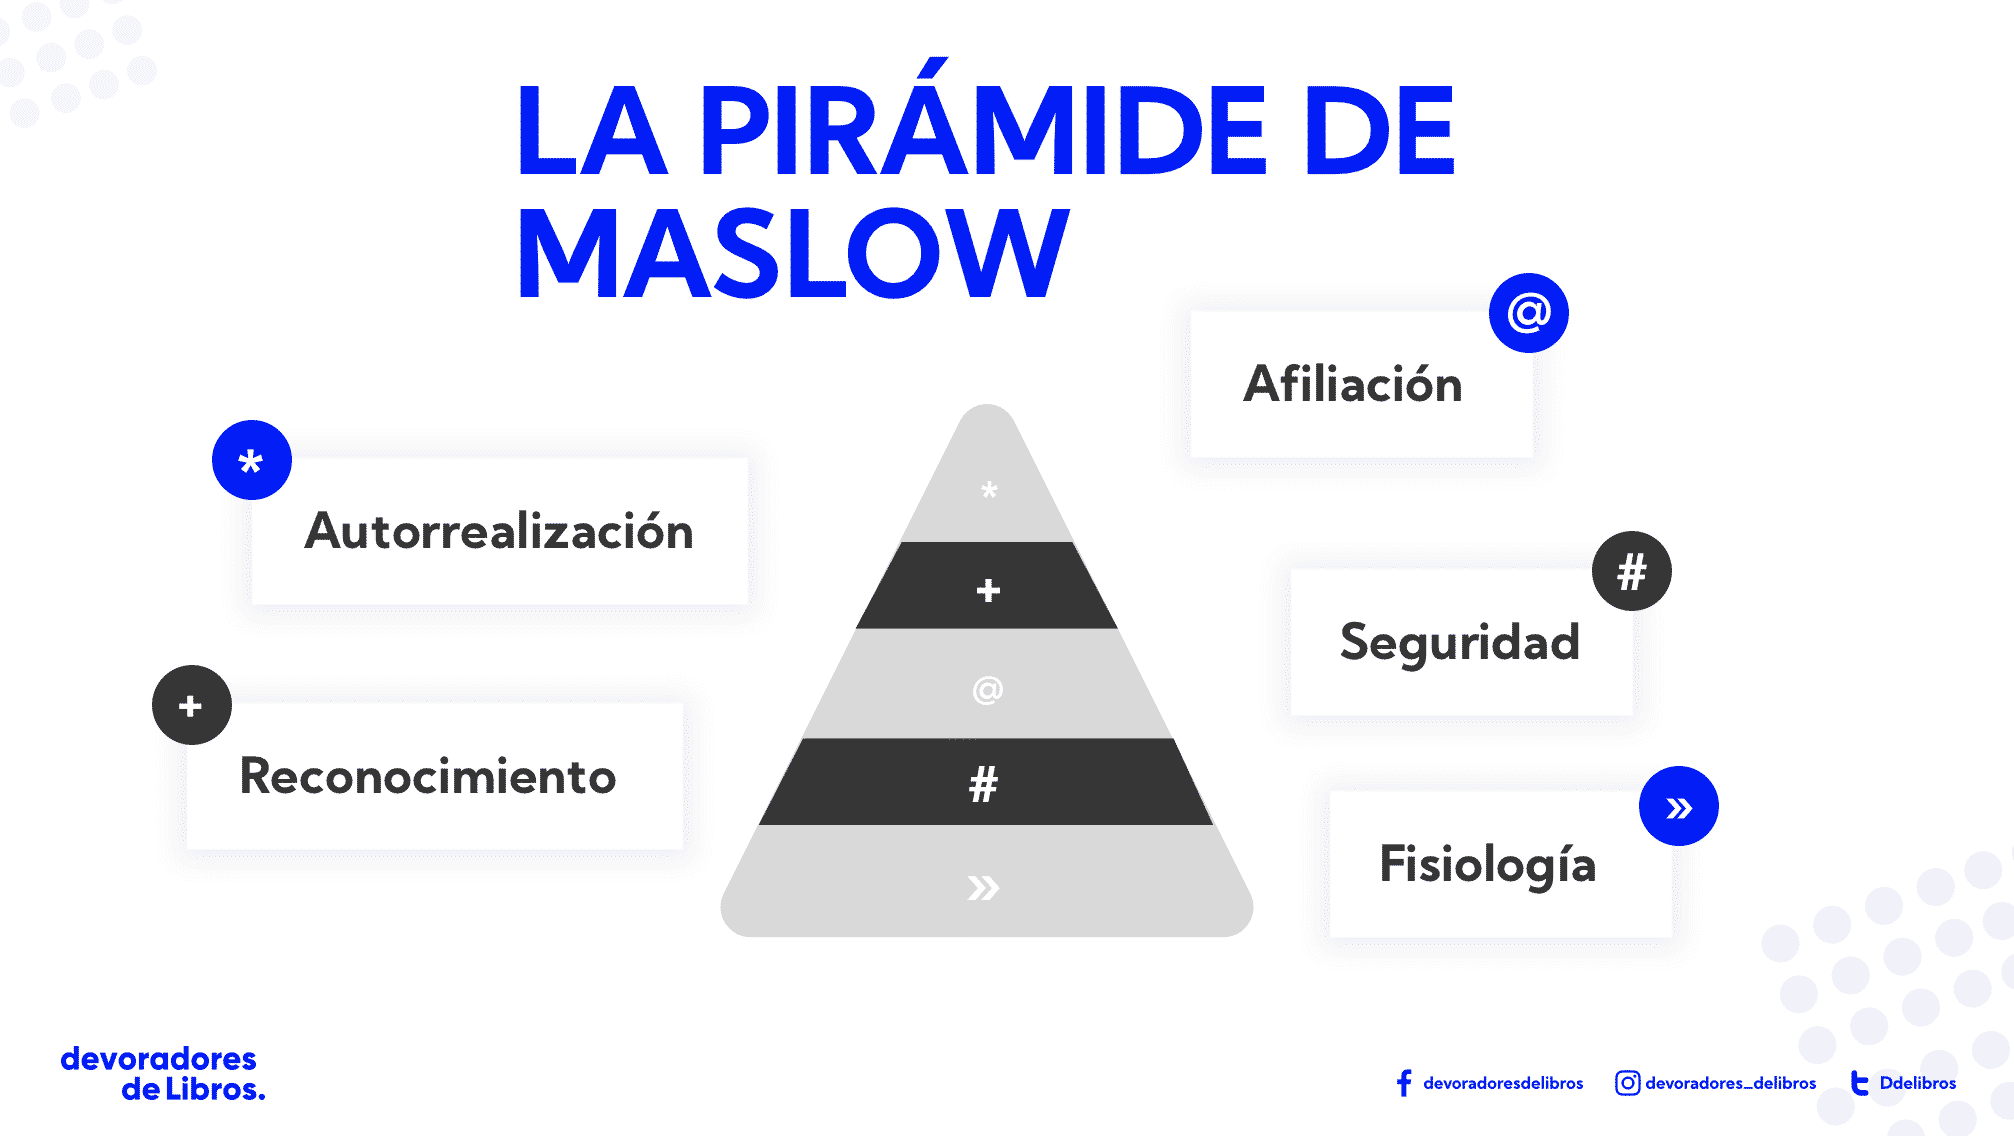 Ideas que pegan de Chip y Dan Heath: piramide de Maslow